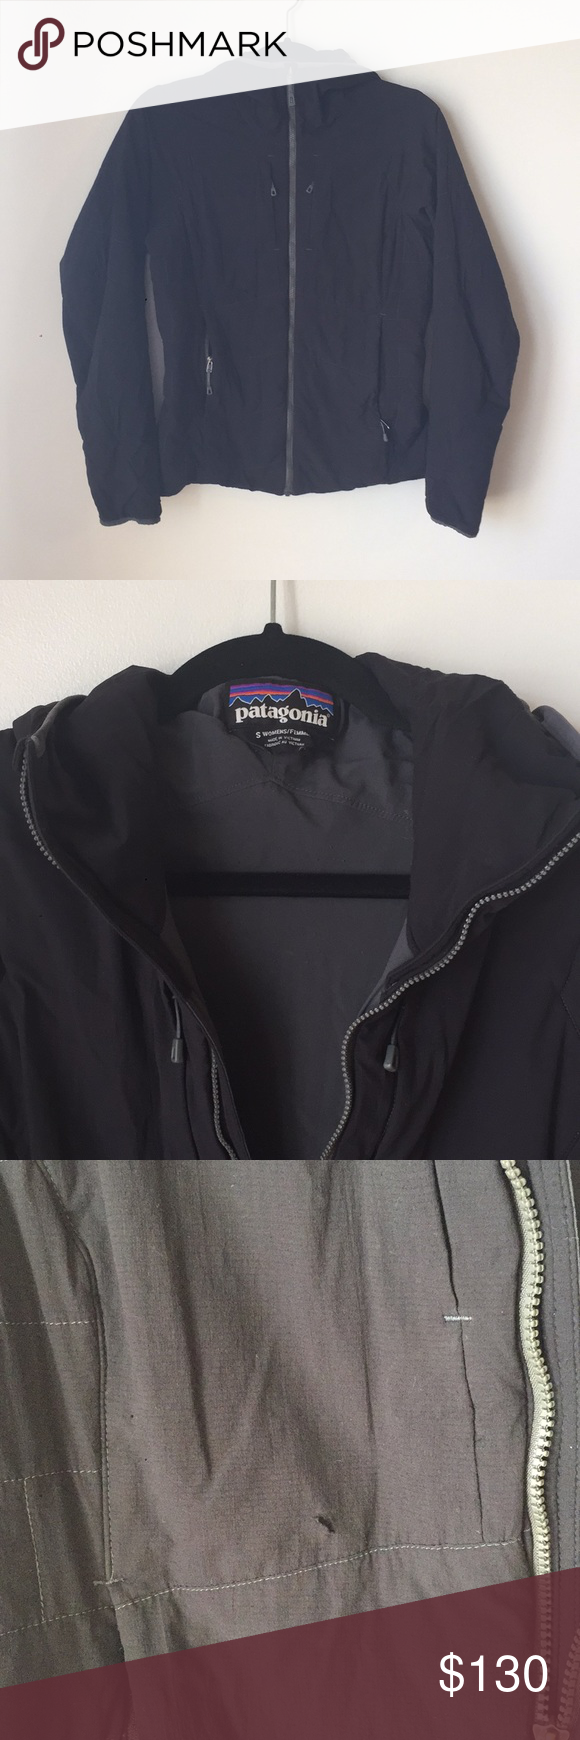 Patagonia Nano Air Insulated Jacket Insulated jackets